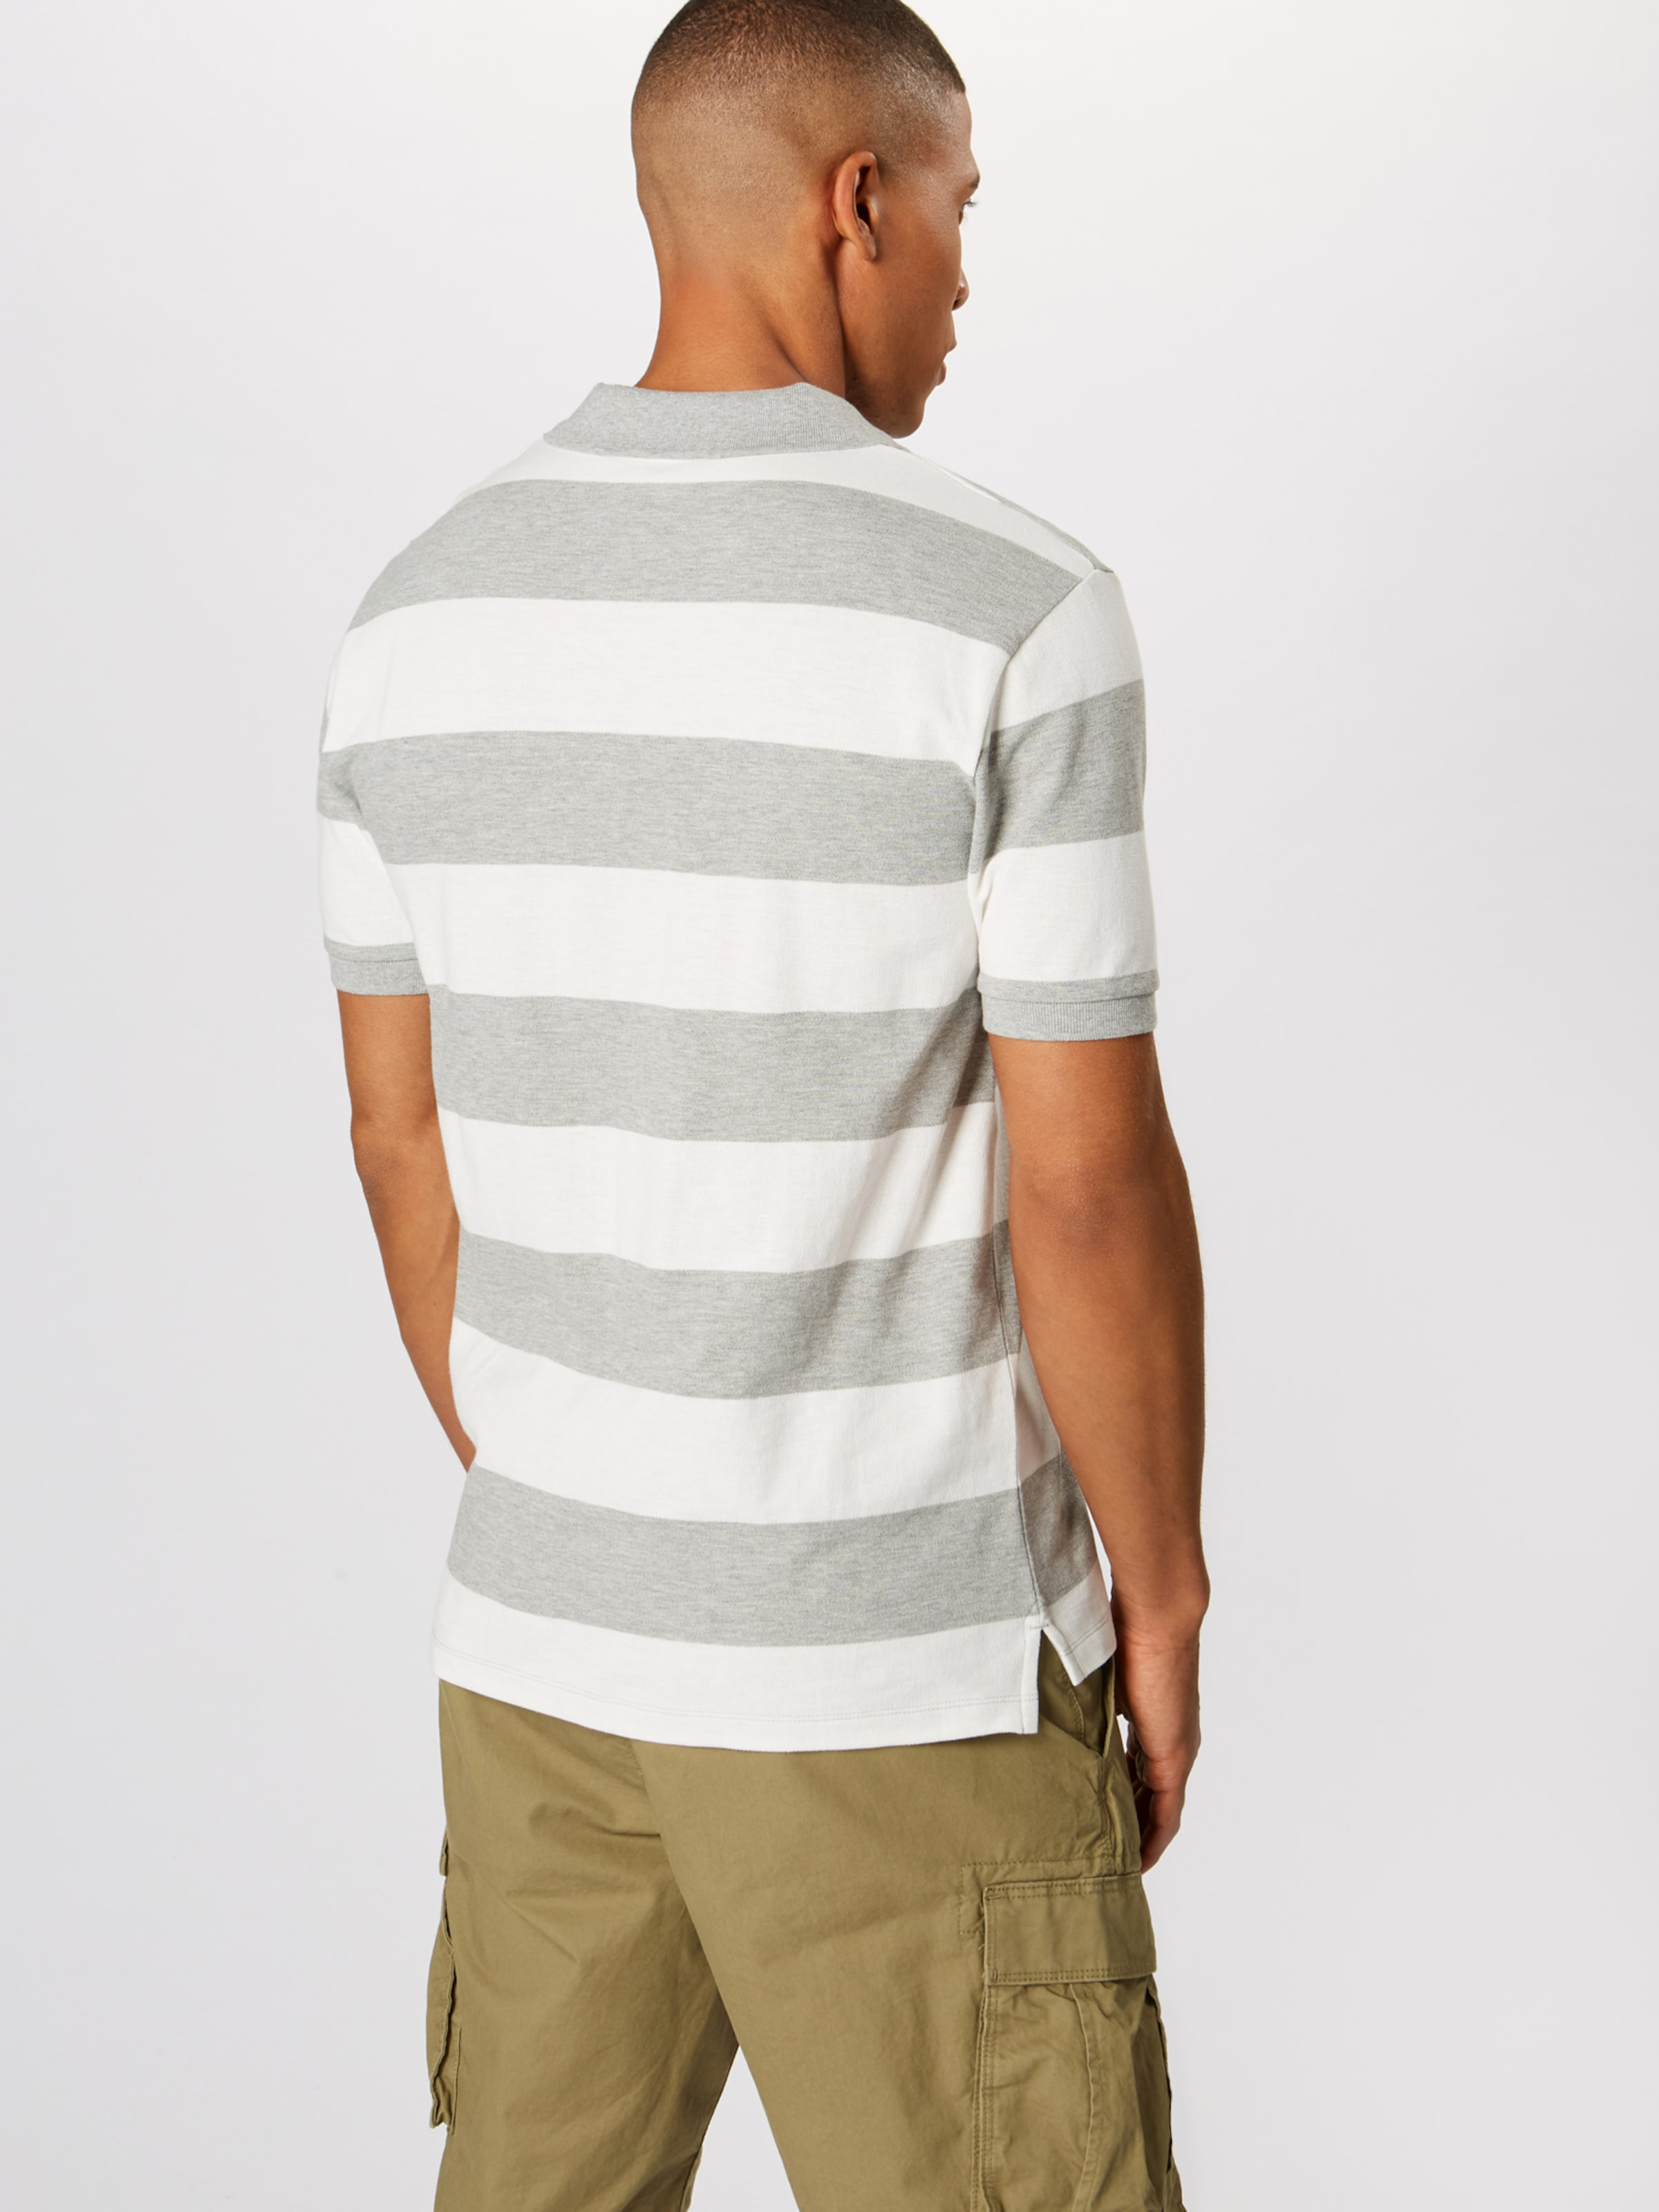 GrauWeiß Shirt Stripe' Gap 'v In pique Polo BoxrdCEQeW